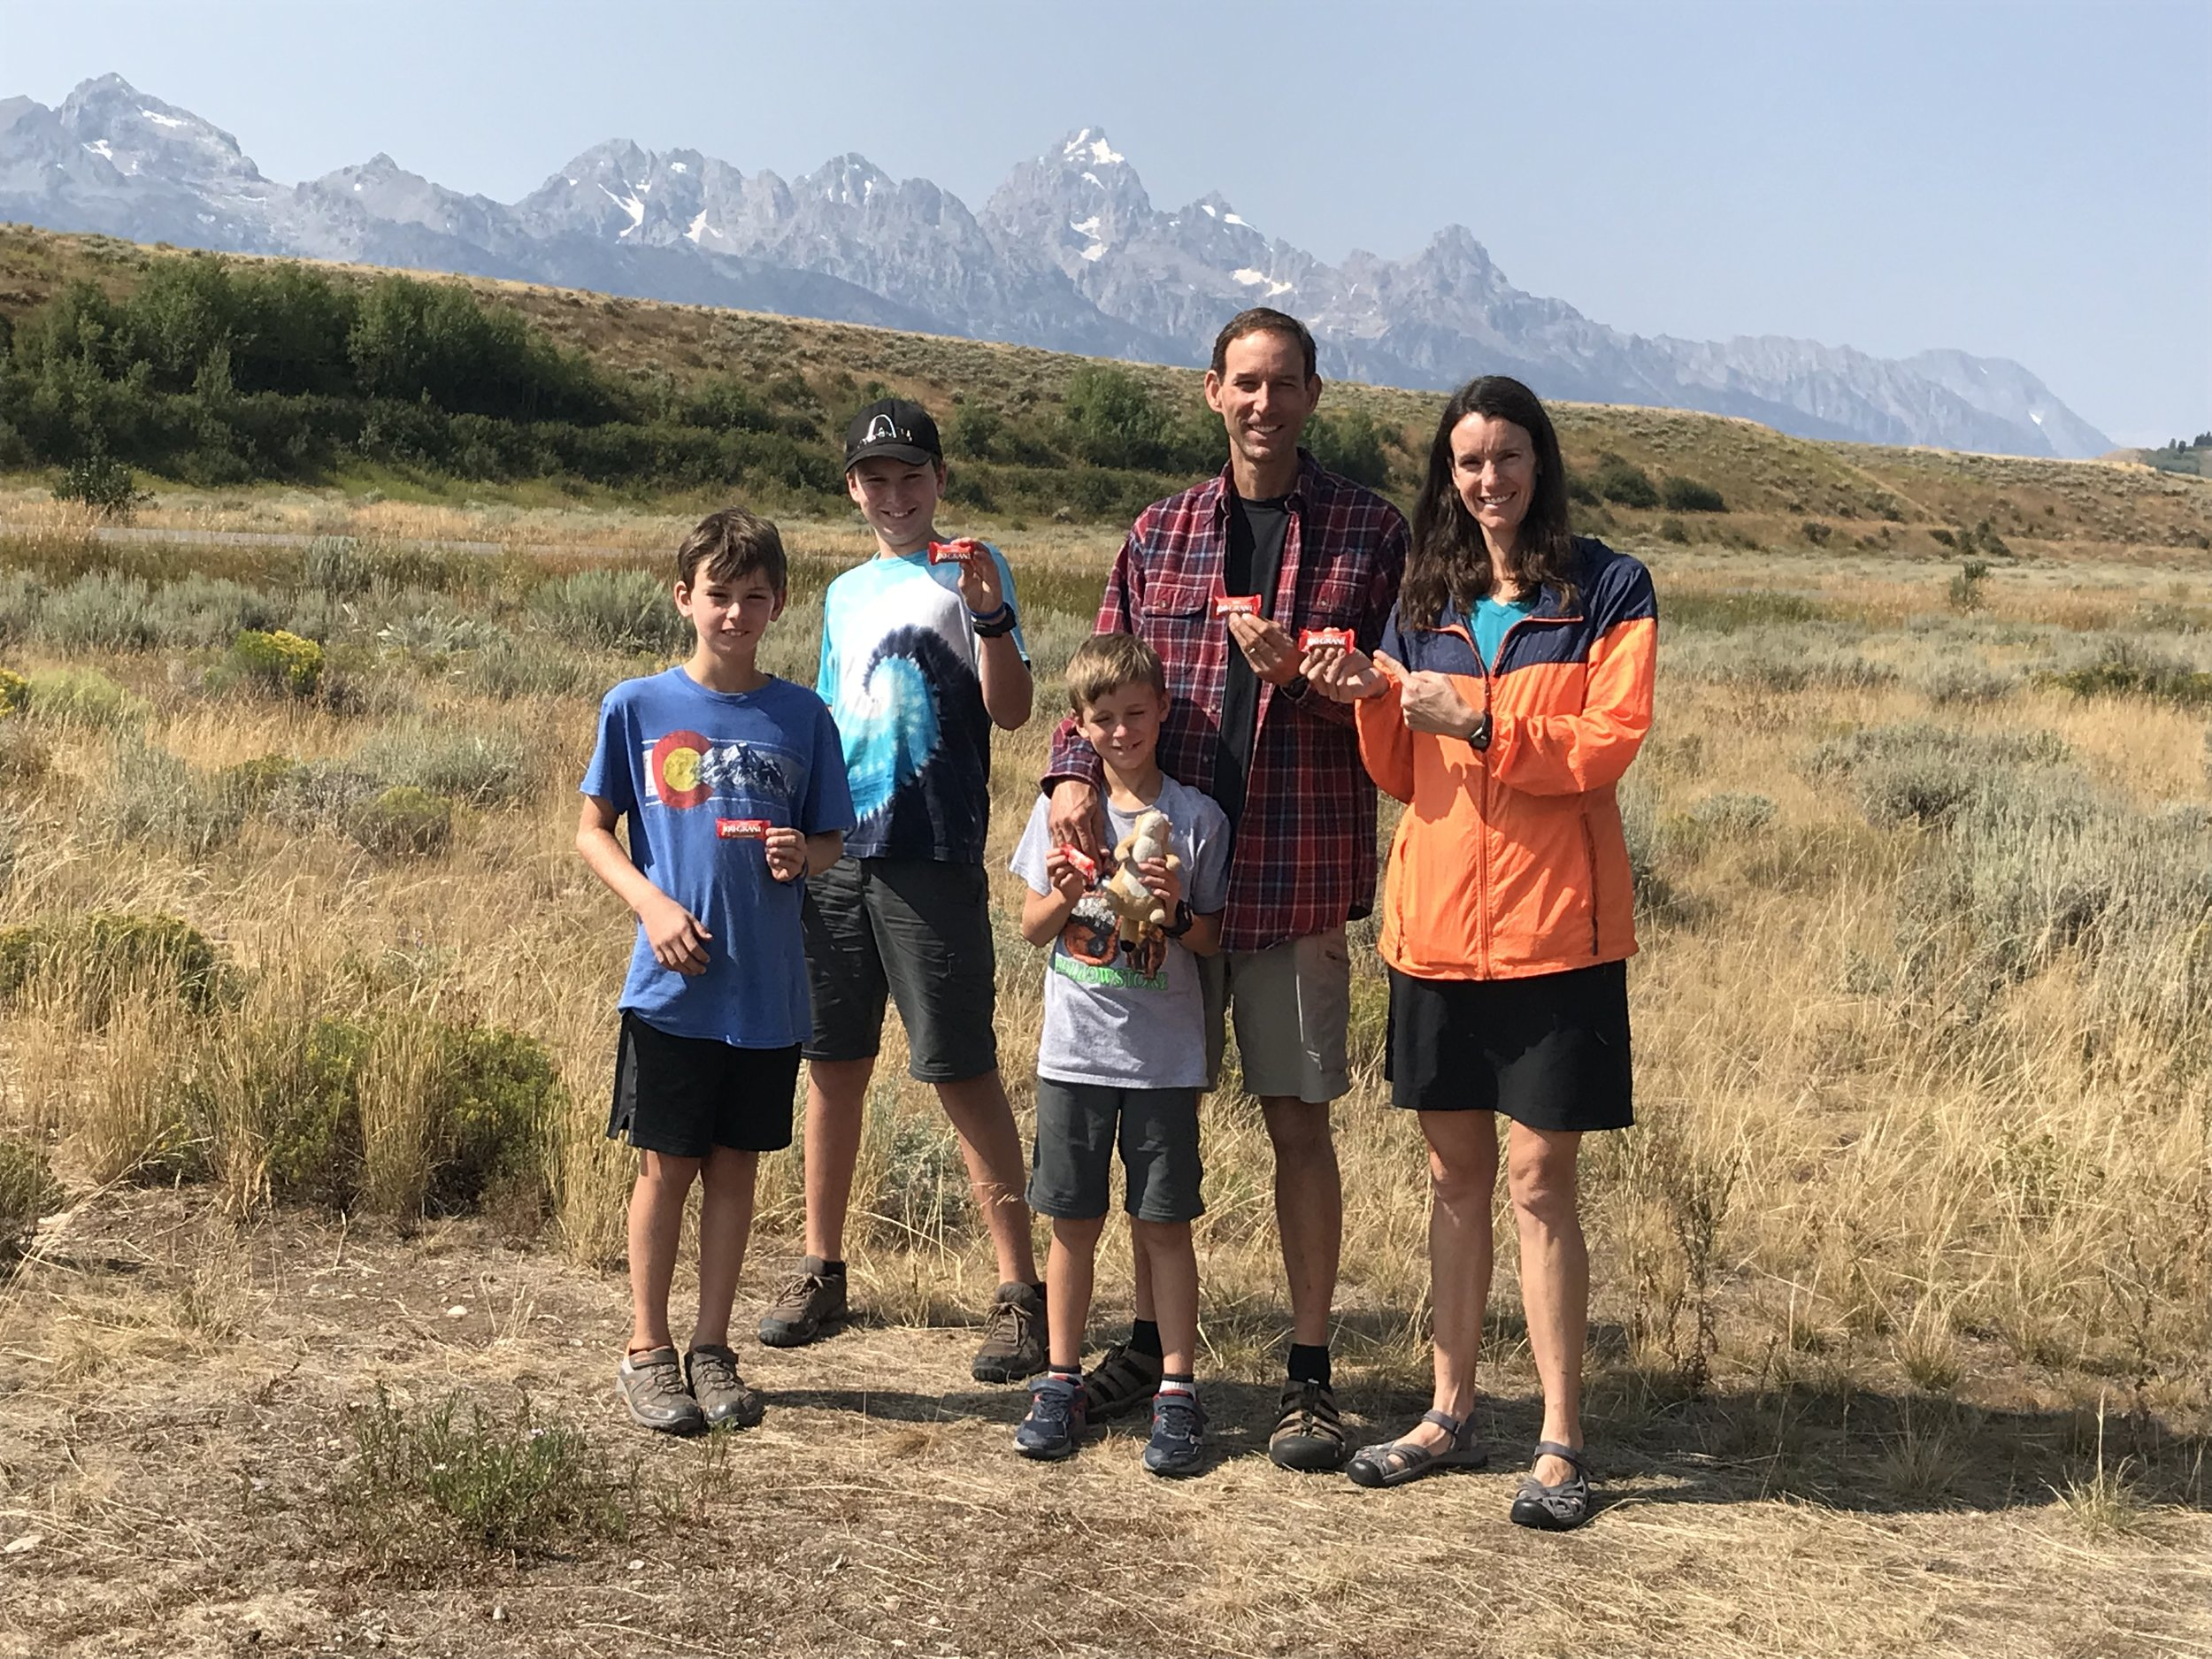 Here we are finally getting ready to eat 100 Grand candy bars in front of the  Grand  Tetons to celebrate our  100 th honk of the Honk-O-Meter.